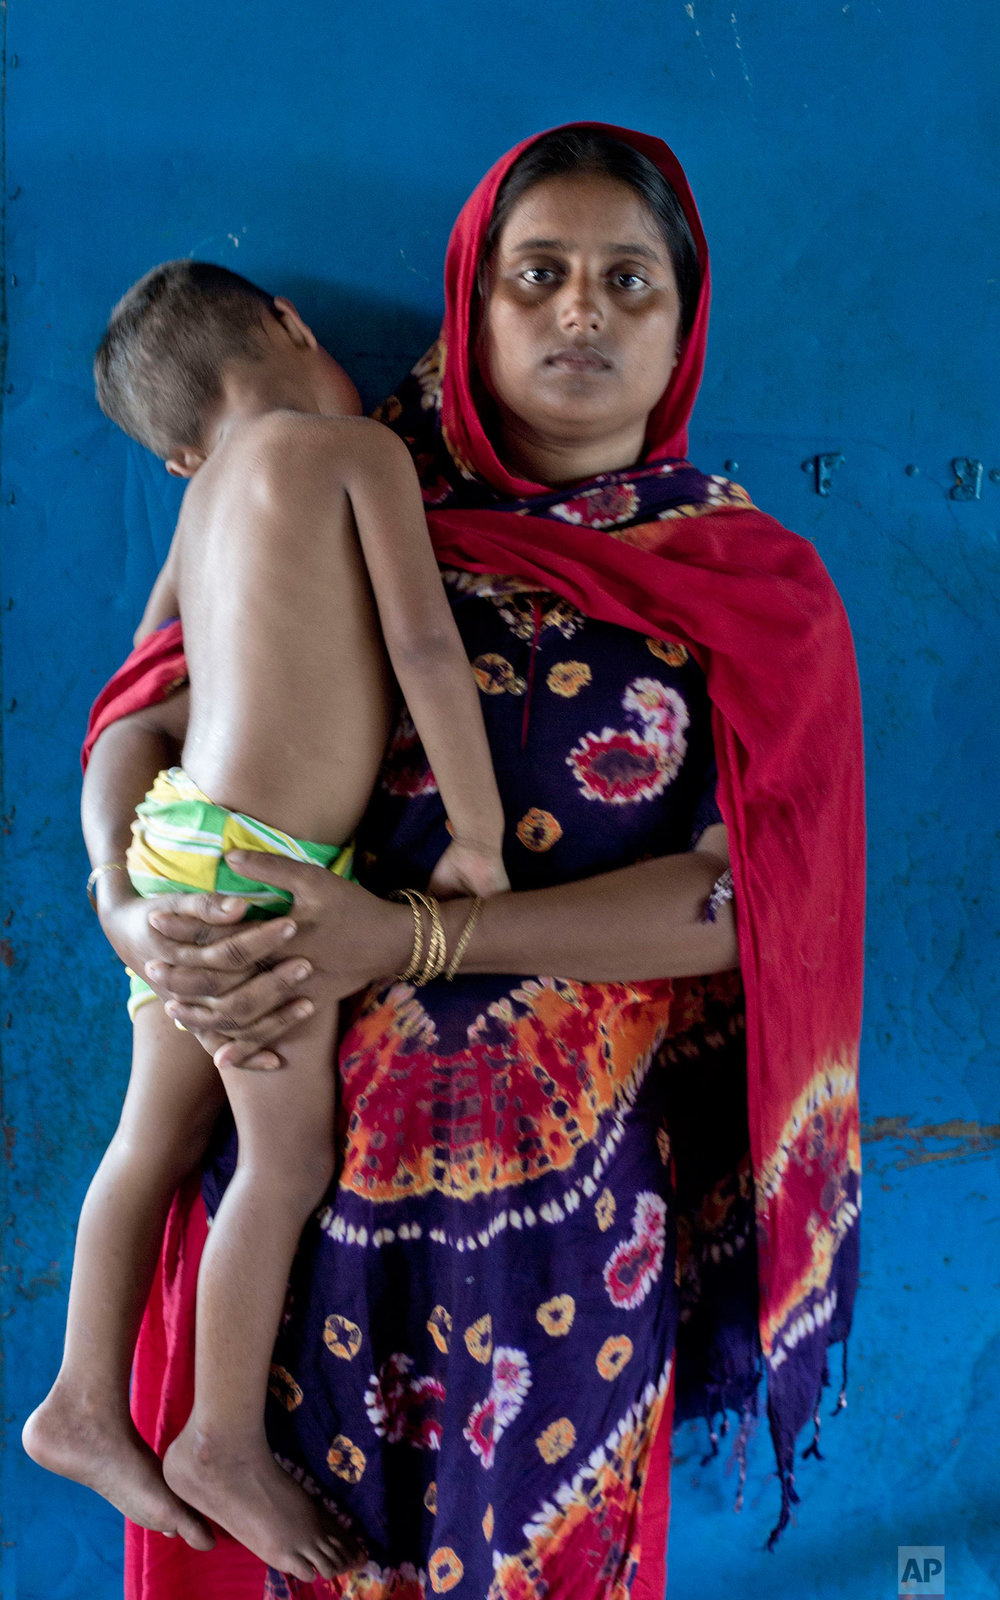 "In this Oct. 1, 2017, photo, 20-year-old Noor Fatima, from Myanmar's Moidaung Village, poses for a photograph with her son Abdul Rahaman inside a classroom serving as a transit shelter for newly arrived Rohingya refugees at Kutupalong camp in Bangladesh. Fatima, her husband 30-year old Abdul Salam, nine-month-old son Shaju Rahaman and Abdul Rahaman were passengers of the boat that capsized on Sept. 28. Shaju Rahaman was in Fatima's lap when the boat capsized. He died few hours after they were rescued. Asked if it was worth it, Fatima said ""I lost my child, but why would I want to go back to Myanmar? I want to forget about that country."" (AP Photo/Gemunu Amarasinghe)"